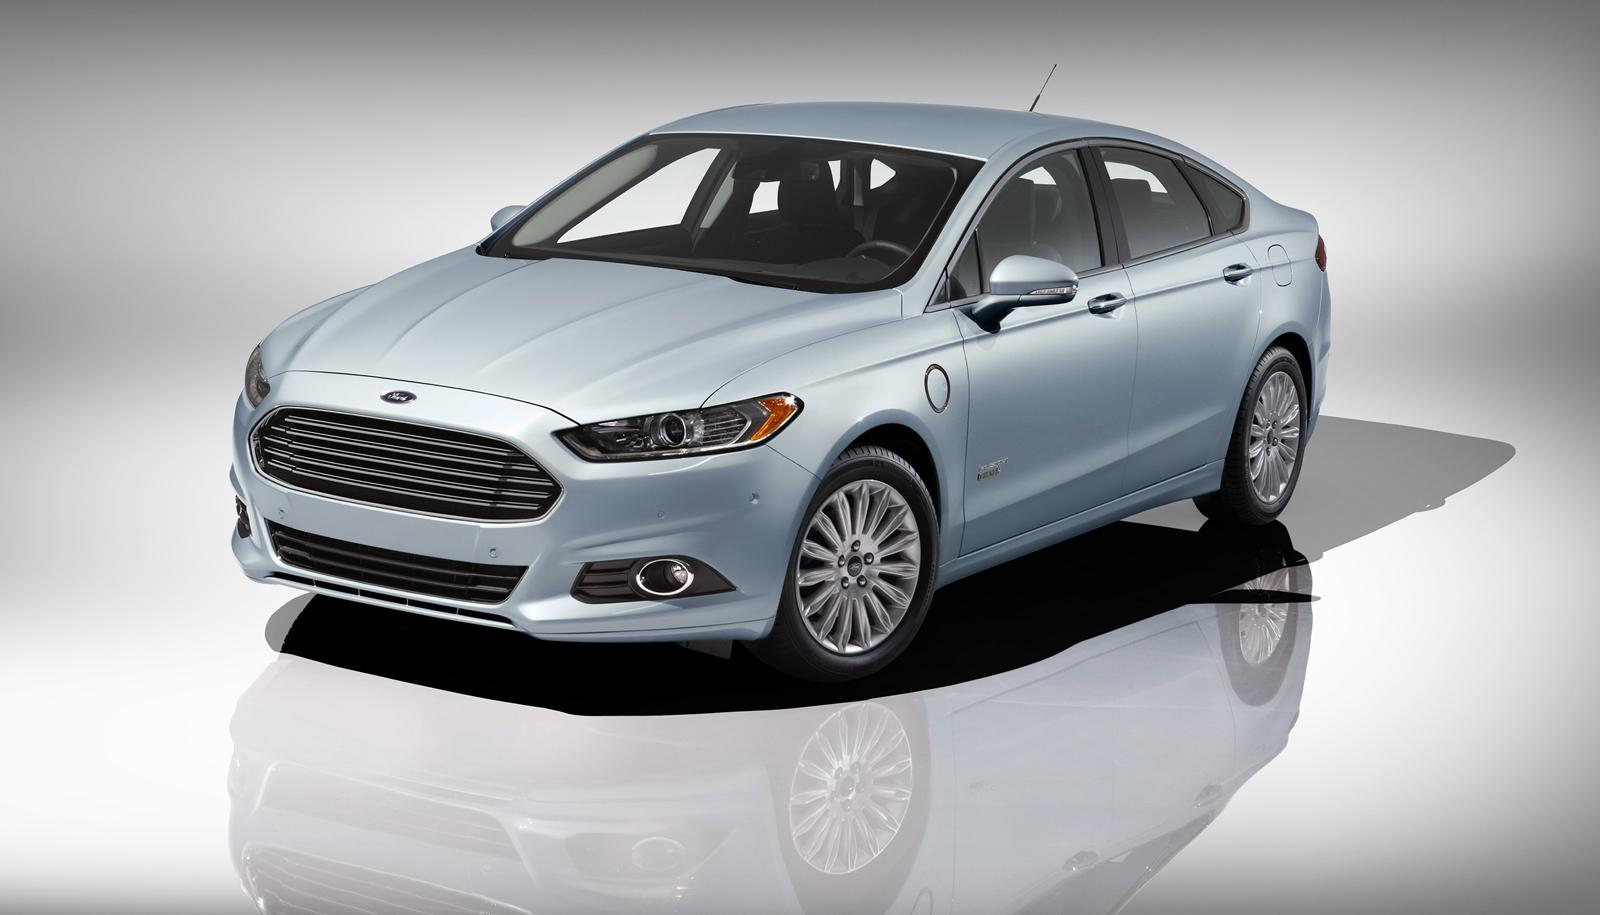 2013 ford fusion pricing starts at 22 495 autoevolution. Black Bedroom Furniture Sets. Home Design Ideas